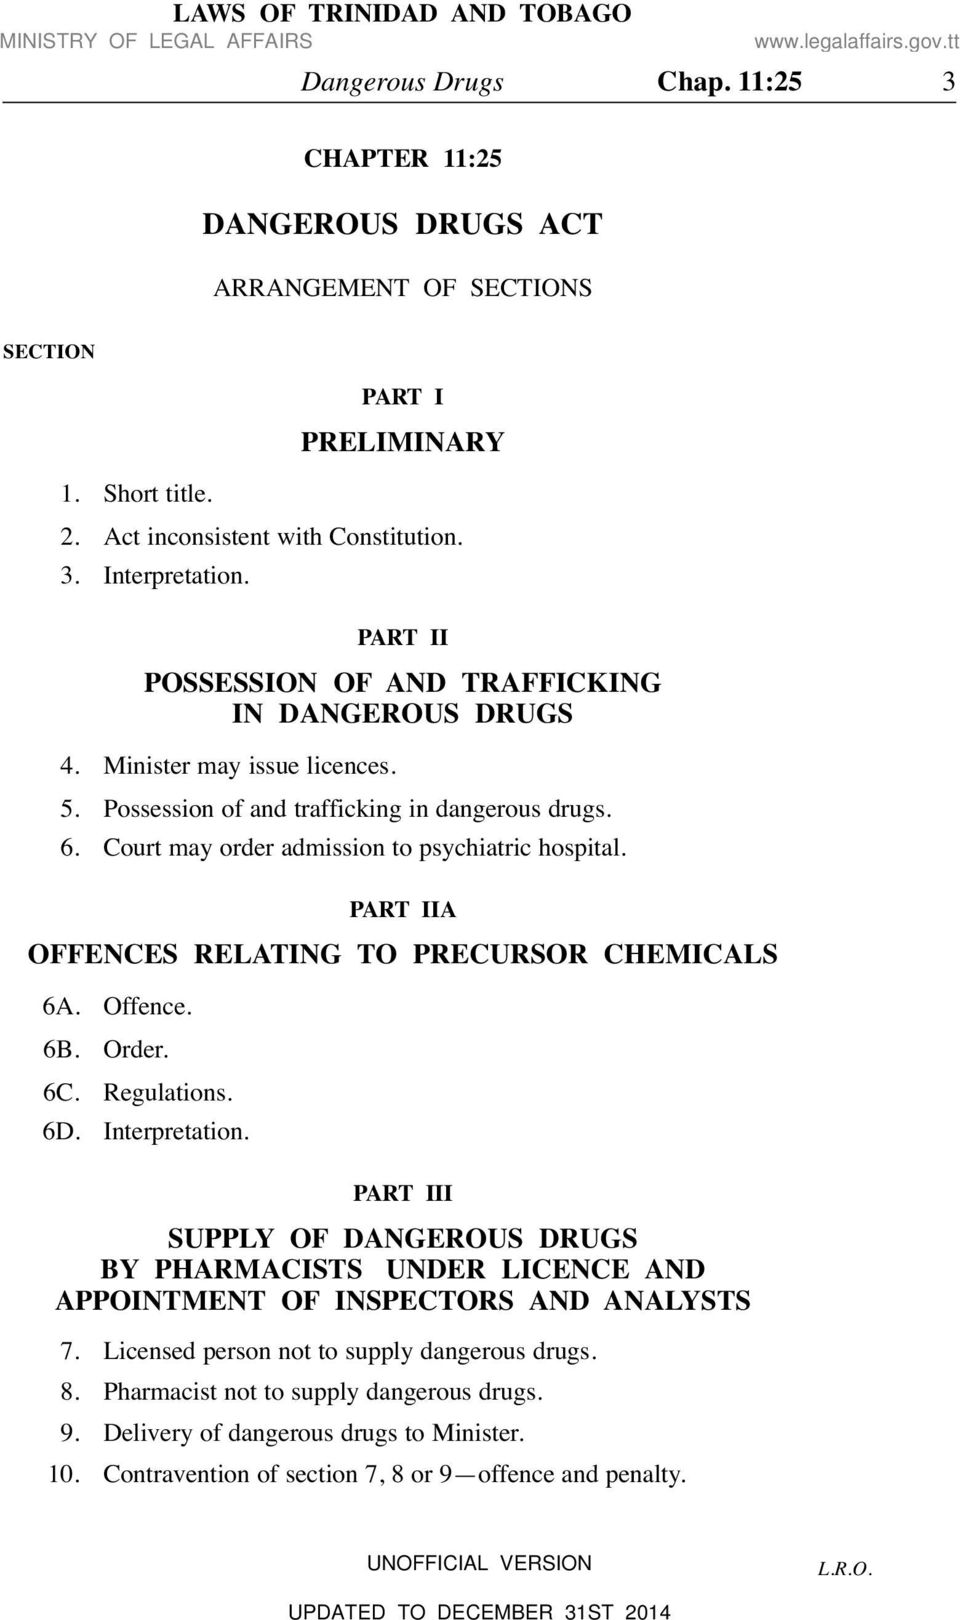 PART IIA OFFENCES RELATING TO PRECURSOR CHEMICALS 6A. Offence. 6B. Order. 6C. Regulations. 6D. Interpretation.